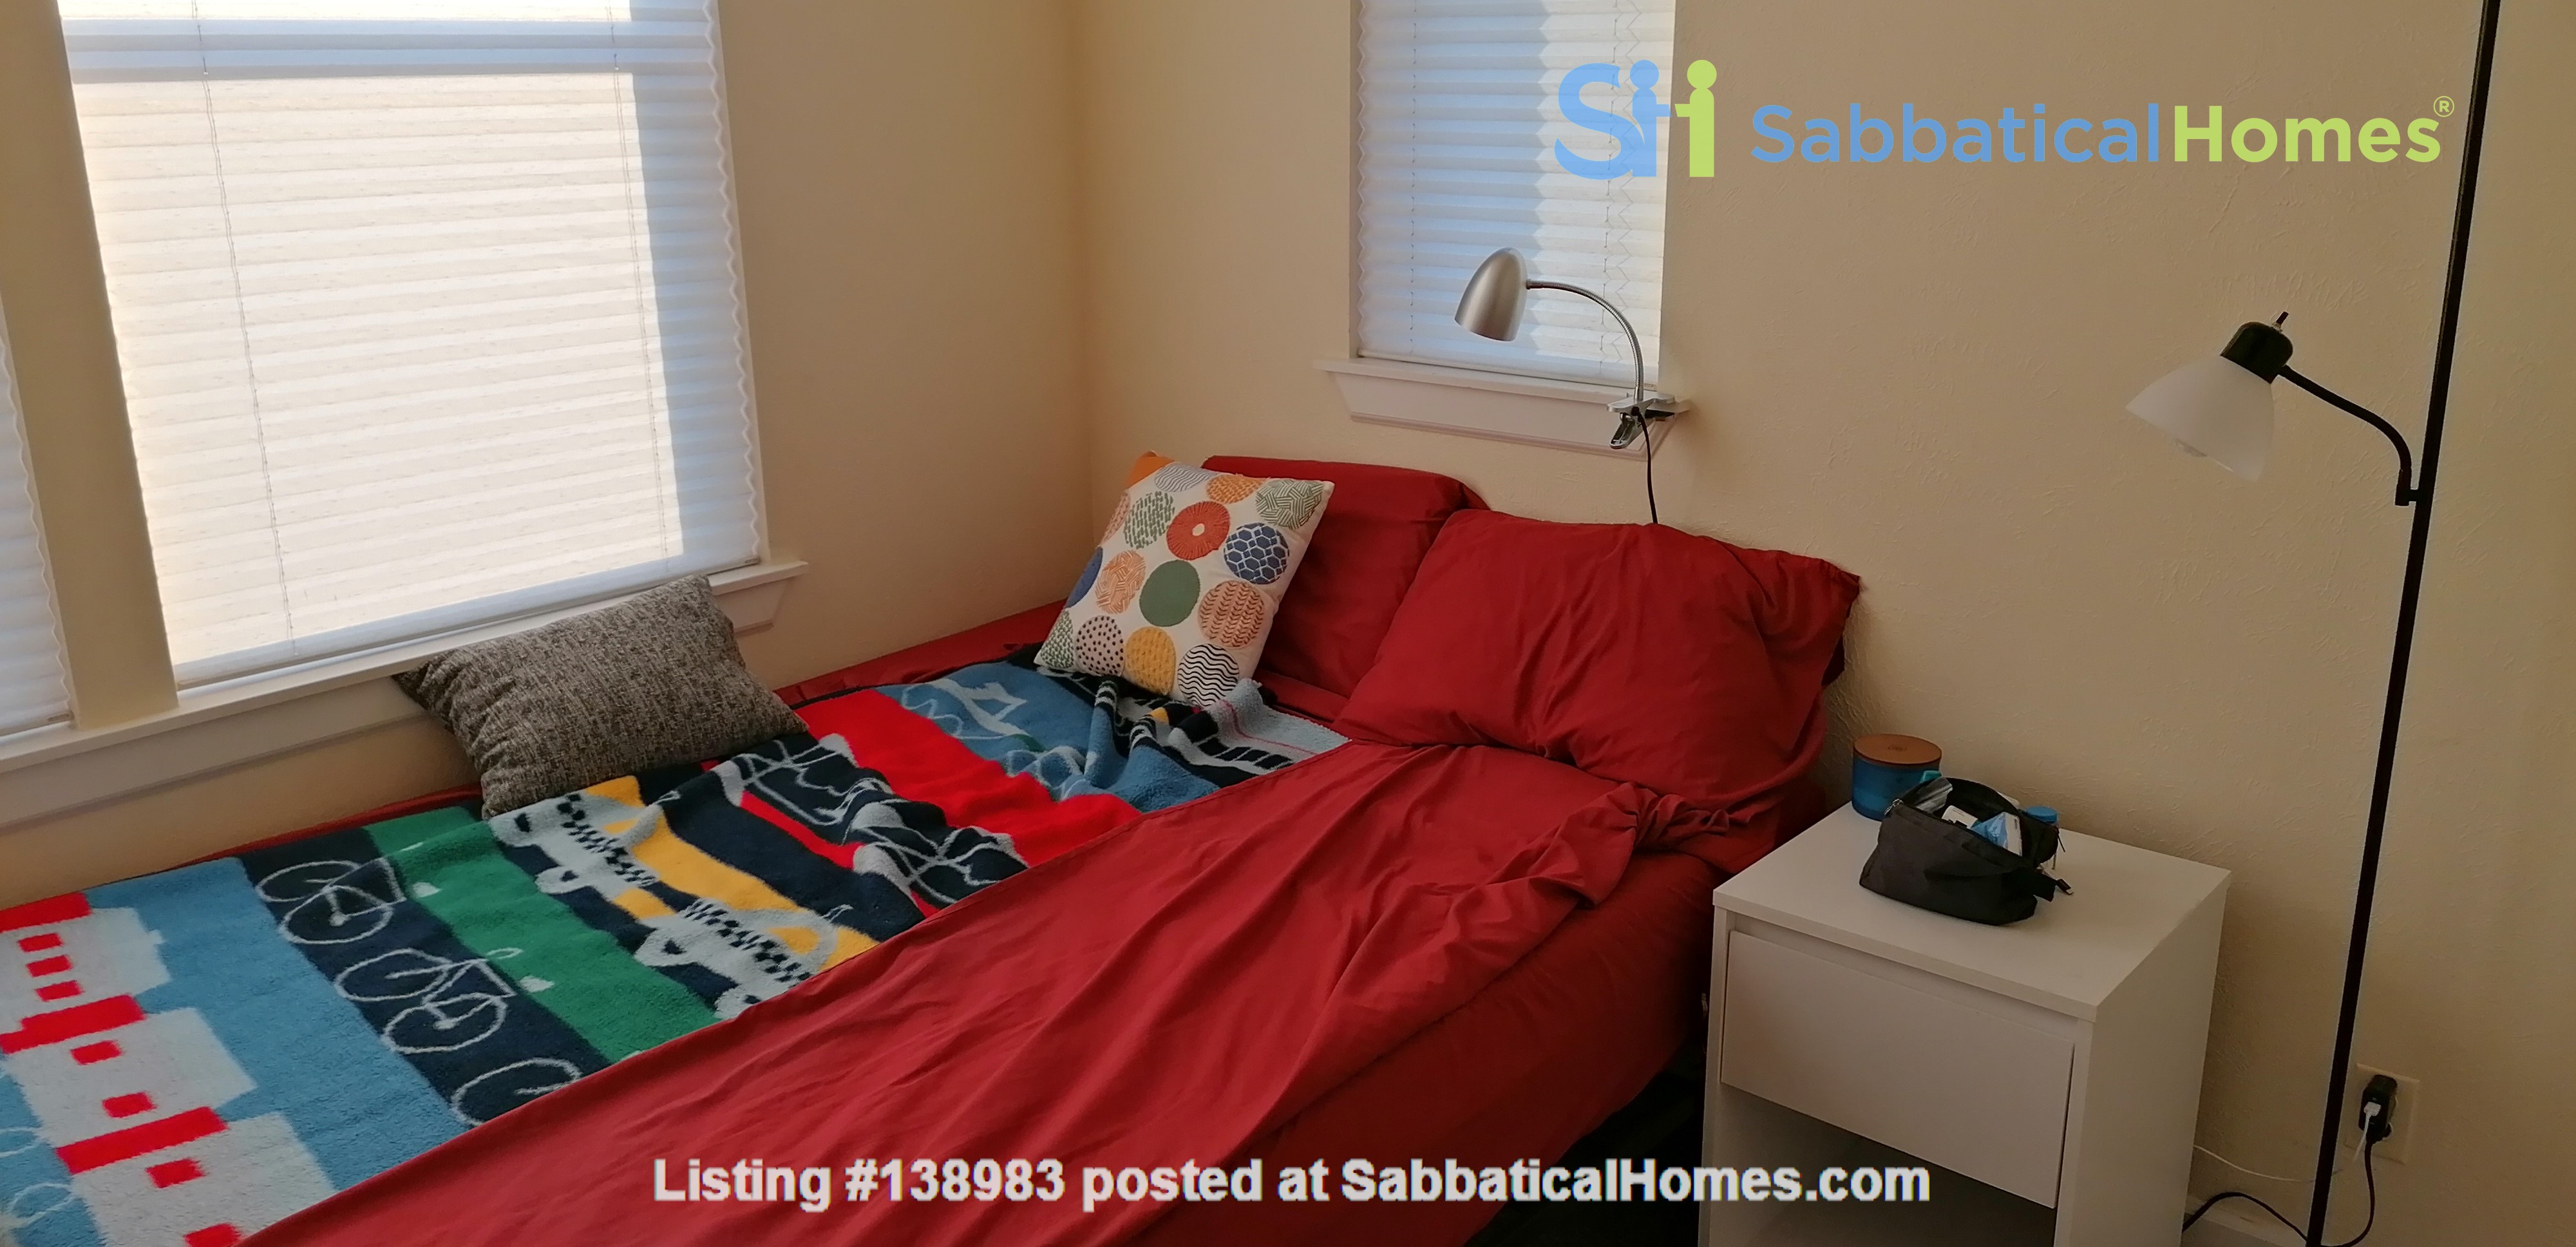 Spacious one bedroom/studio  apartment in Missoula, MT Home Rental in Missoula, Montana, United States 9